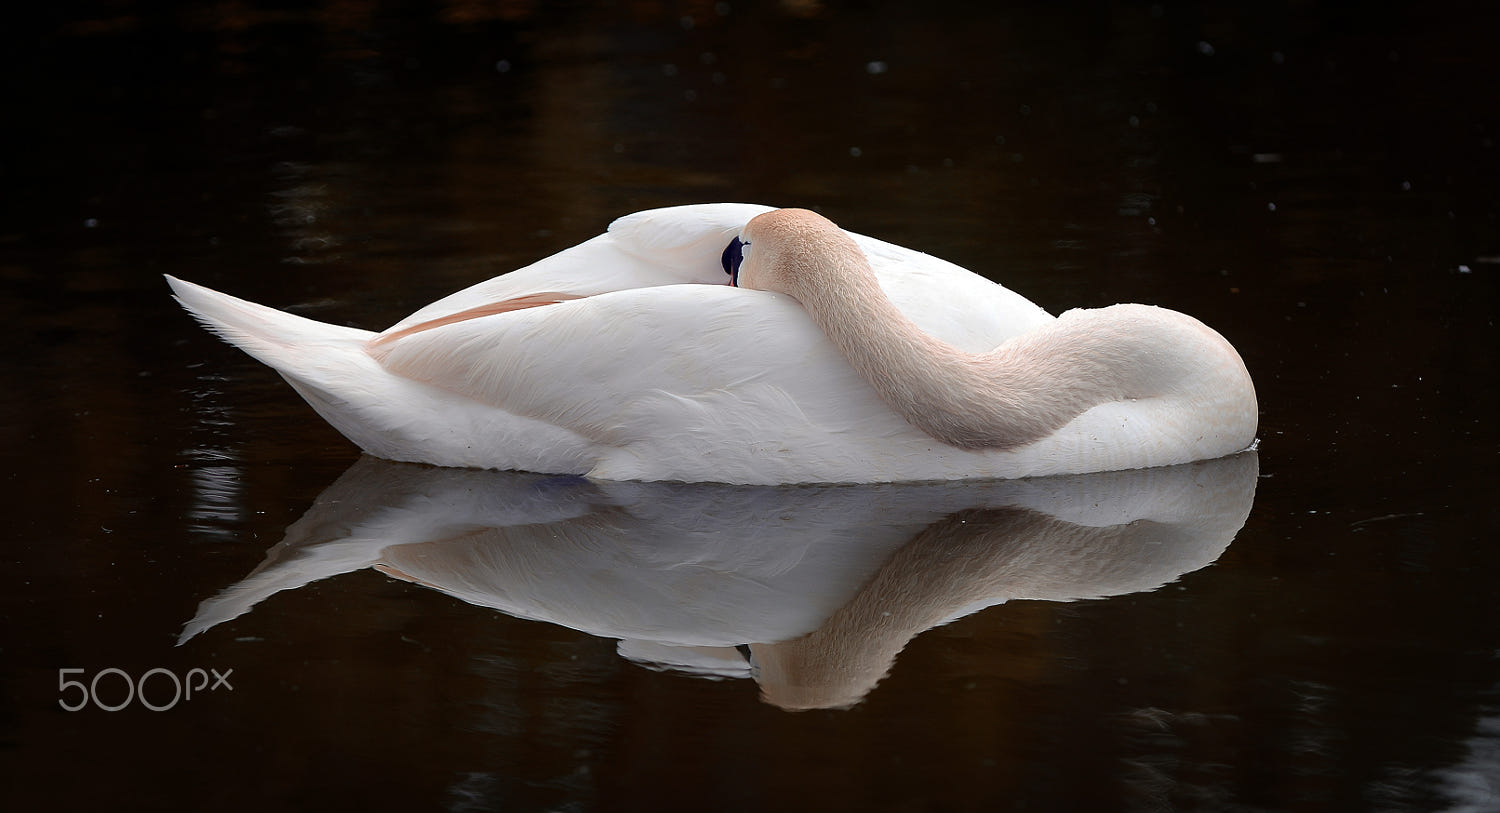 The Sleeping Swans >> Sleeping Swan By Peter Comninellis 500px